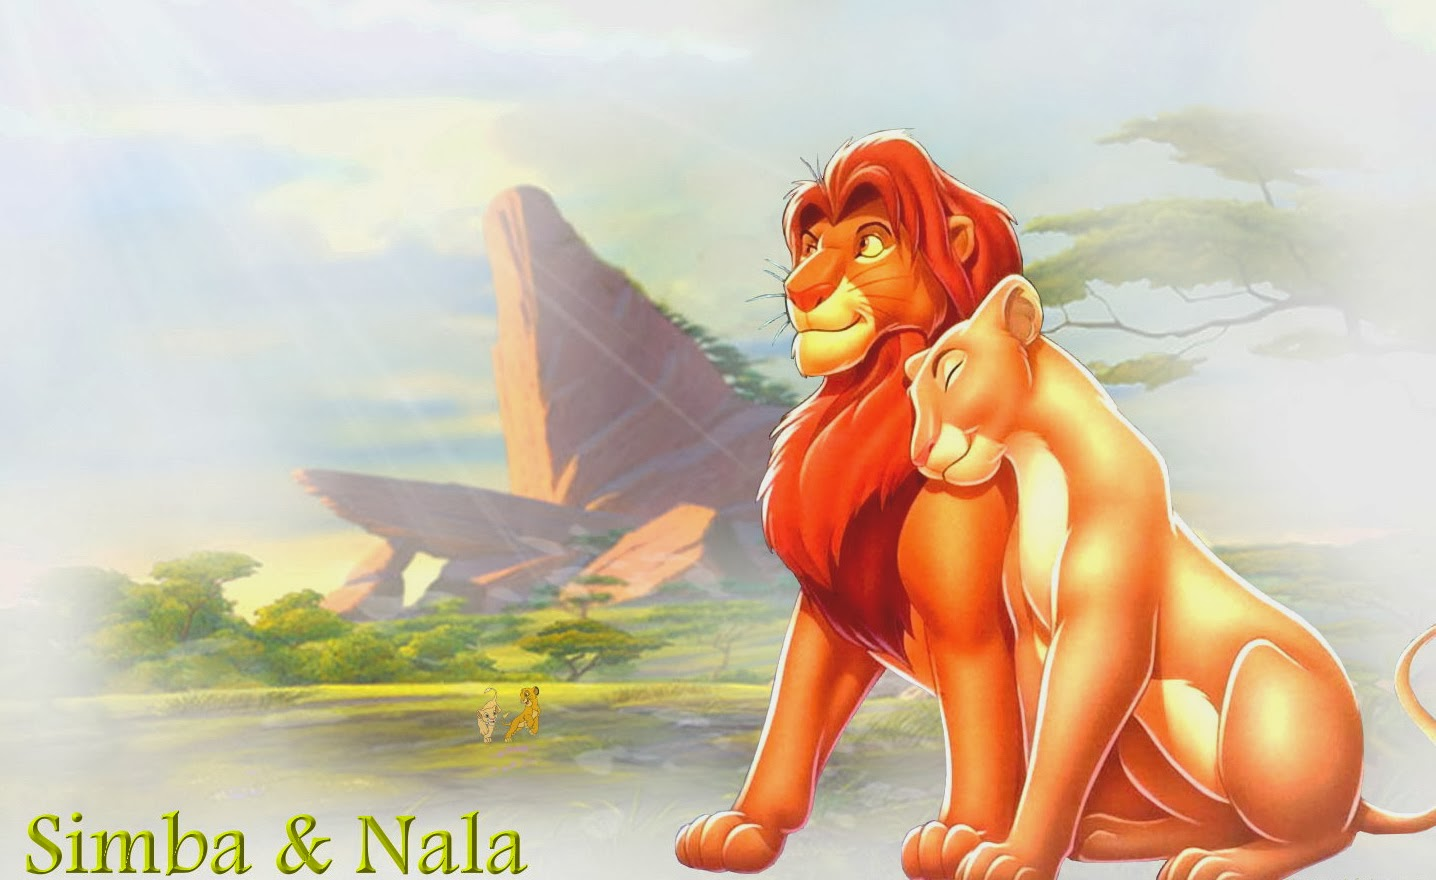 BackgroundsYou can Download Latest Disney Valentine Wallpaper 1436x880